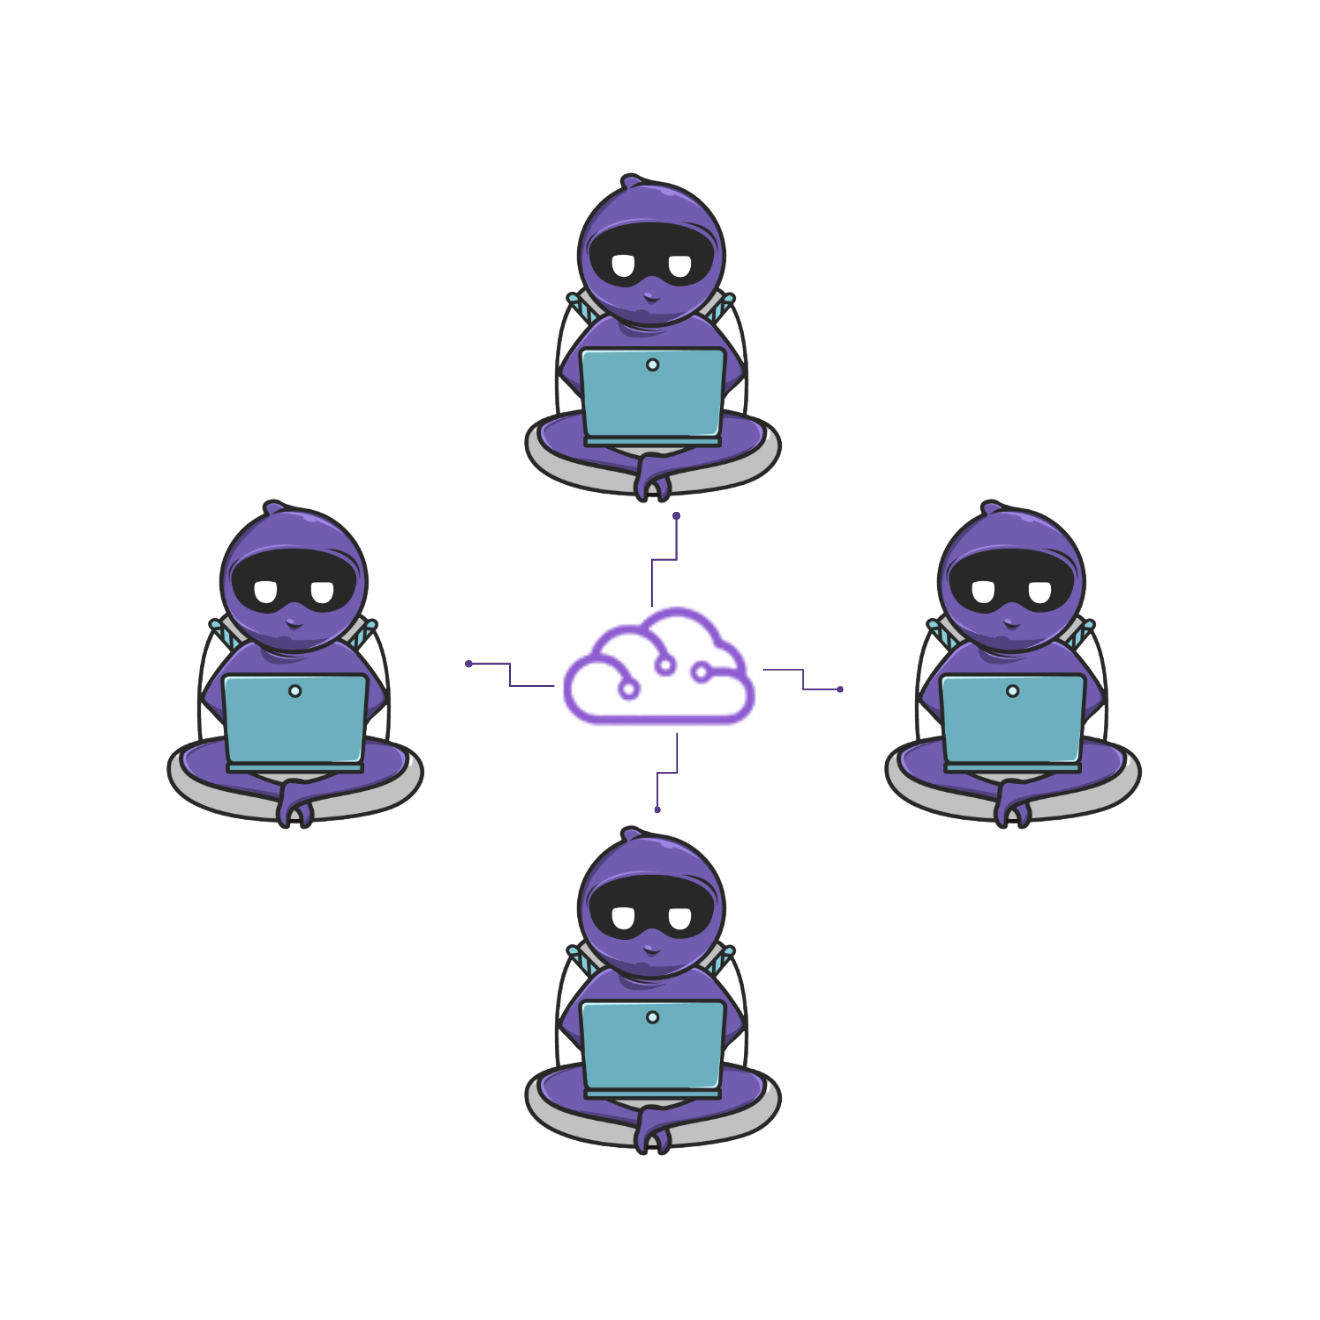 A group of Ninjas connected by NinjaCloud.